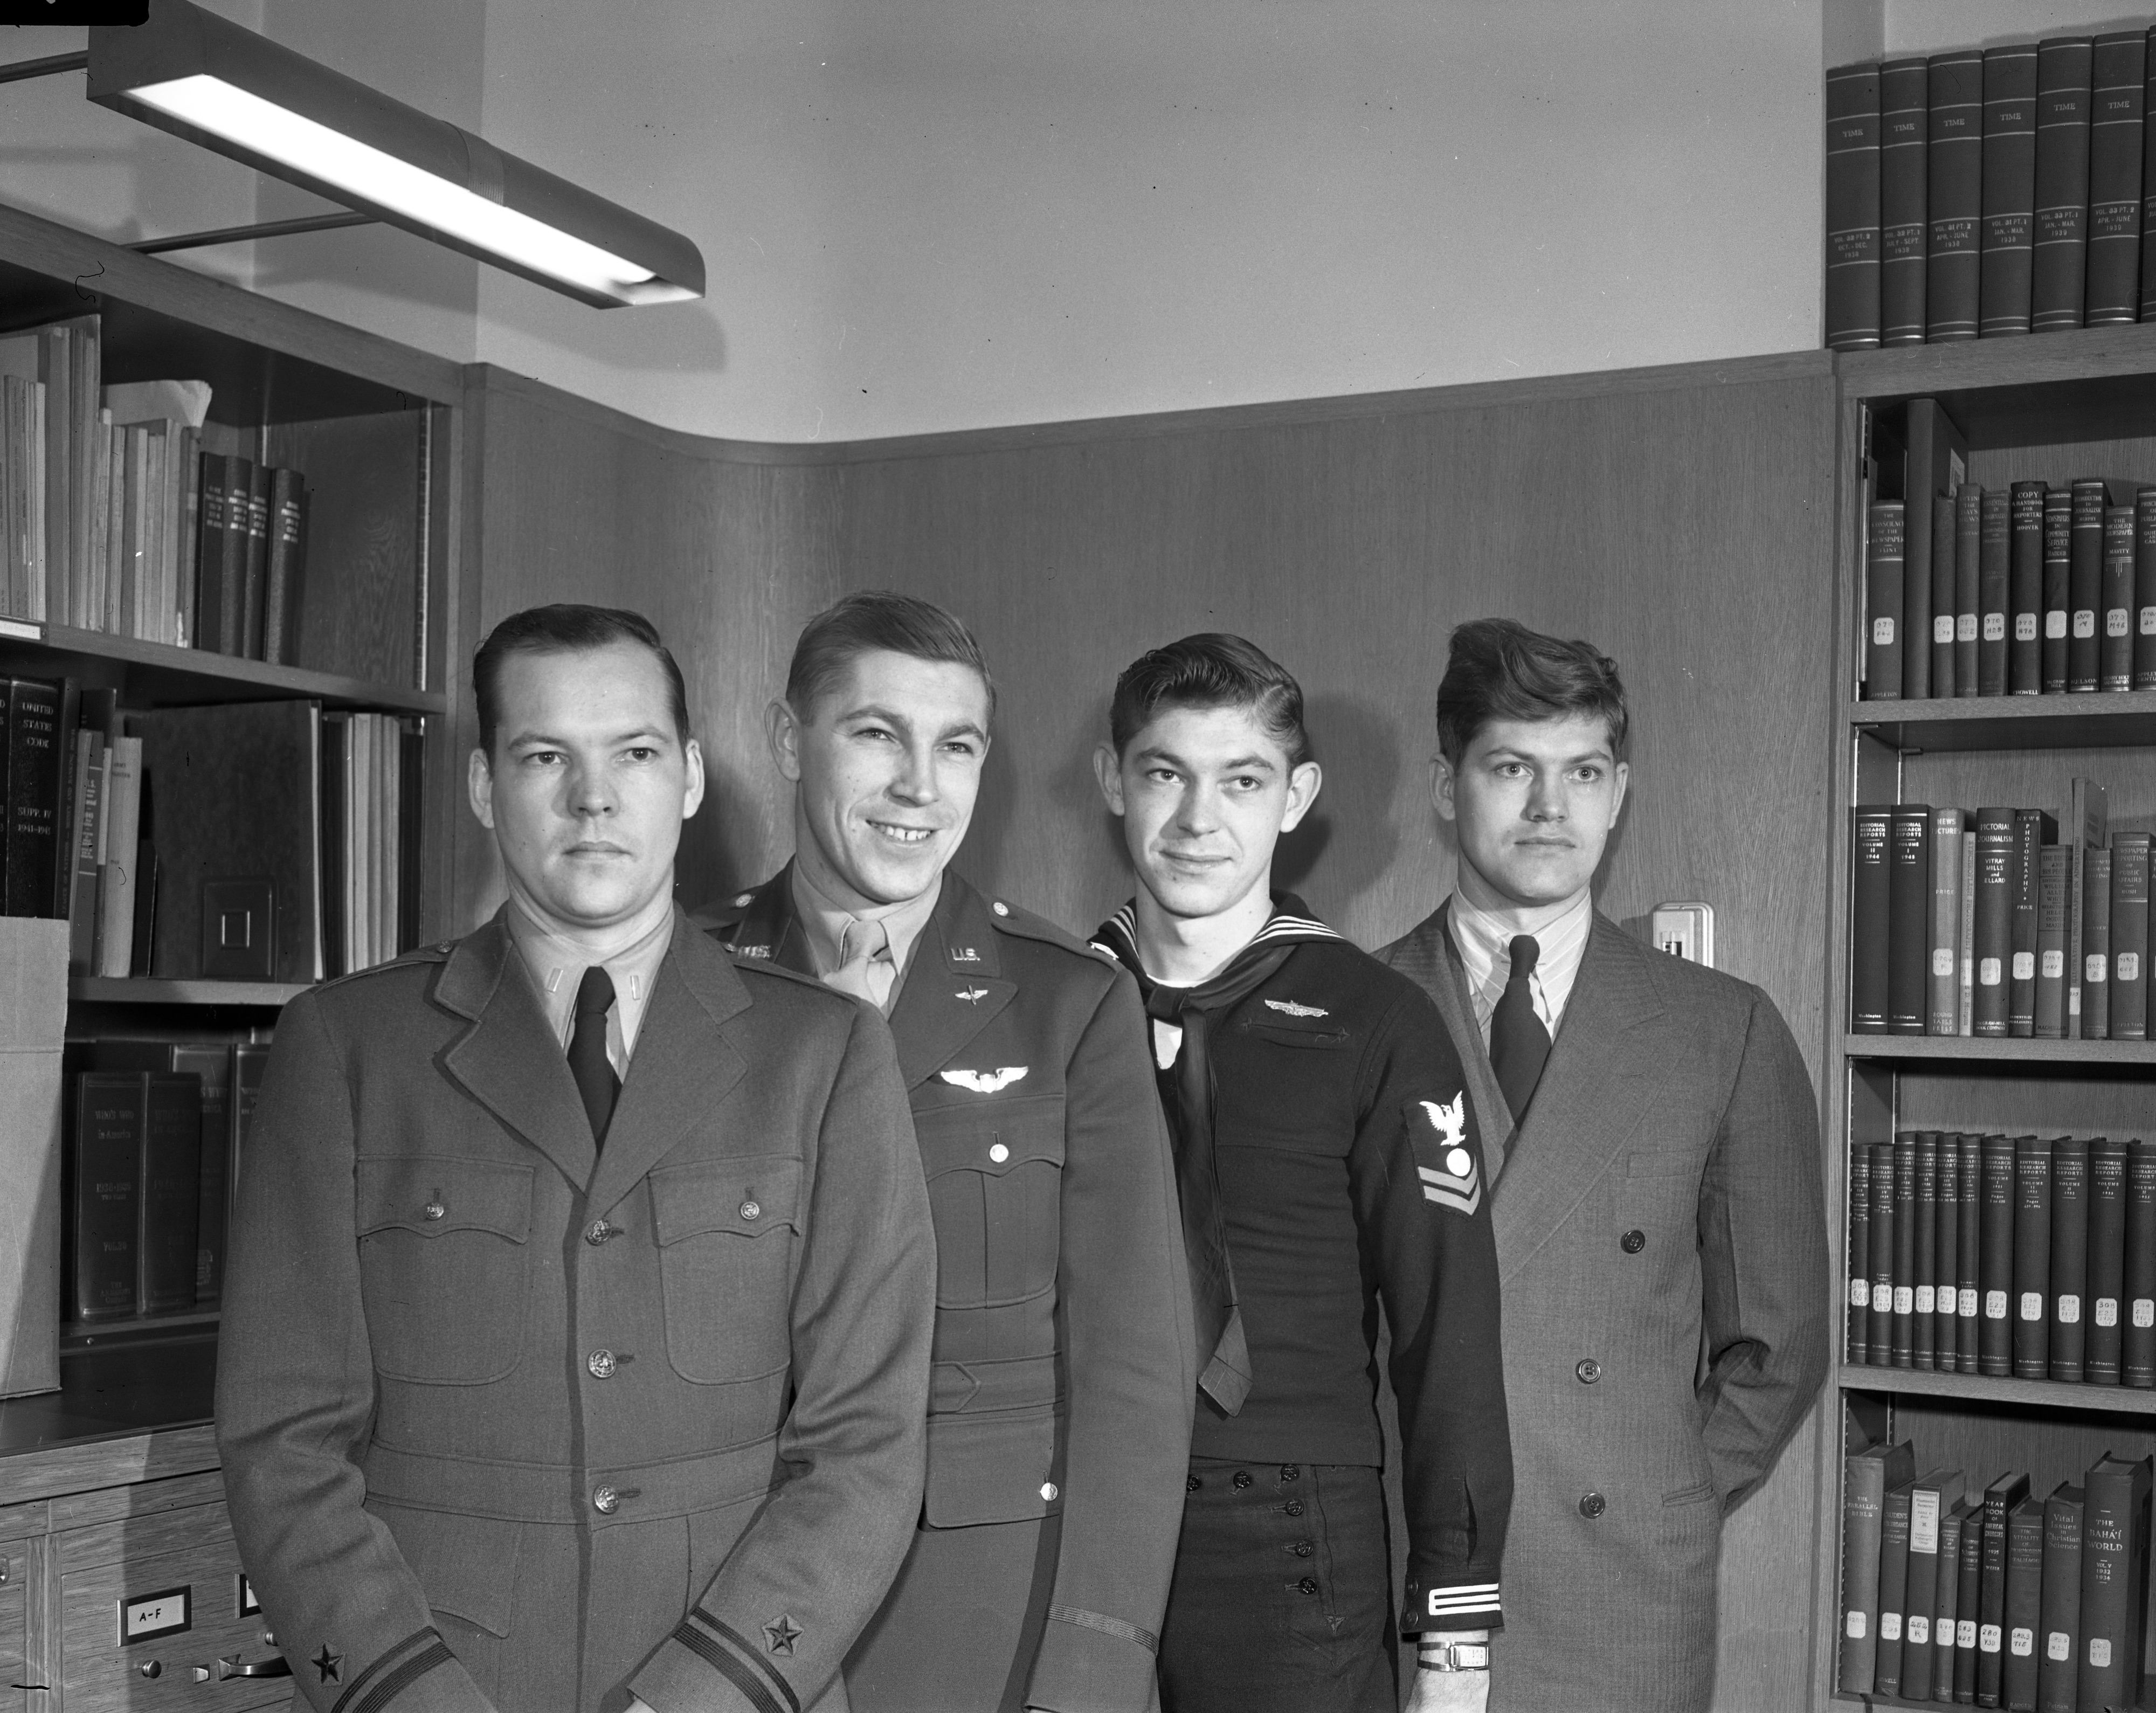 Four High Brothers, All Veterans, November 1945 image